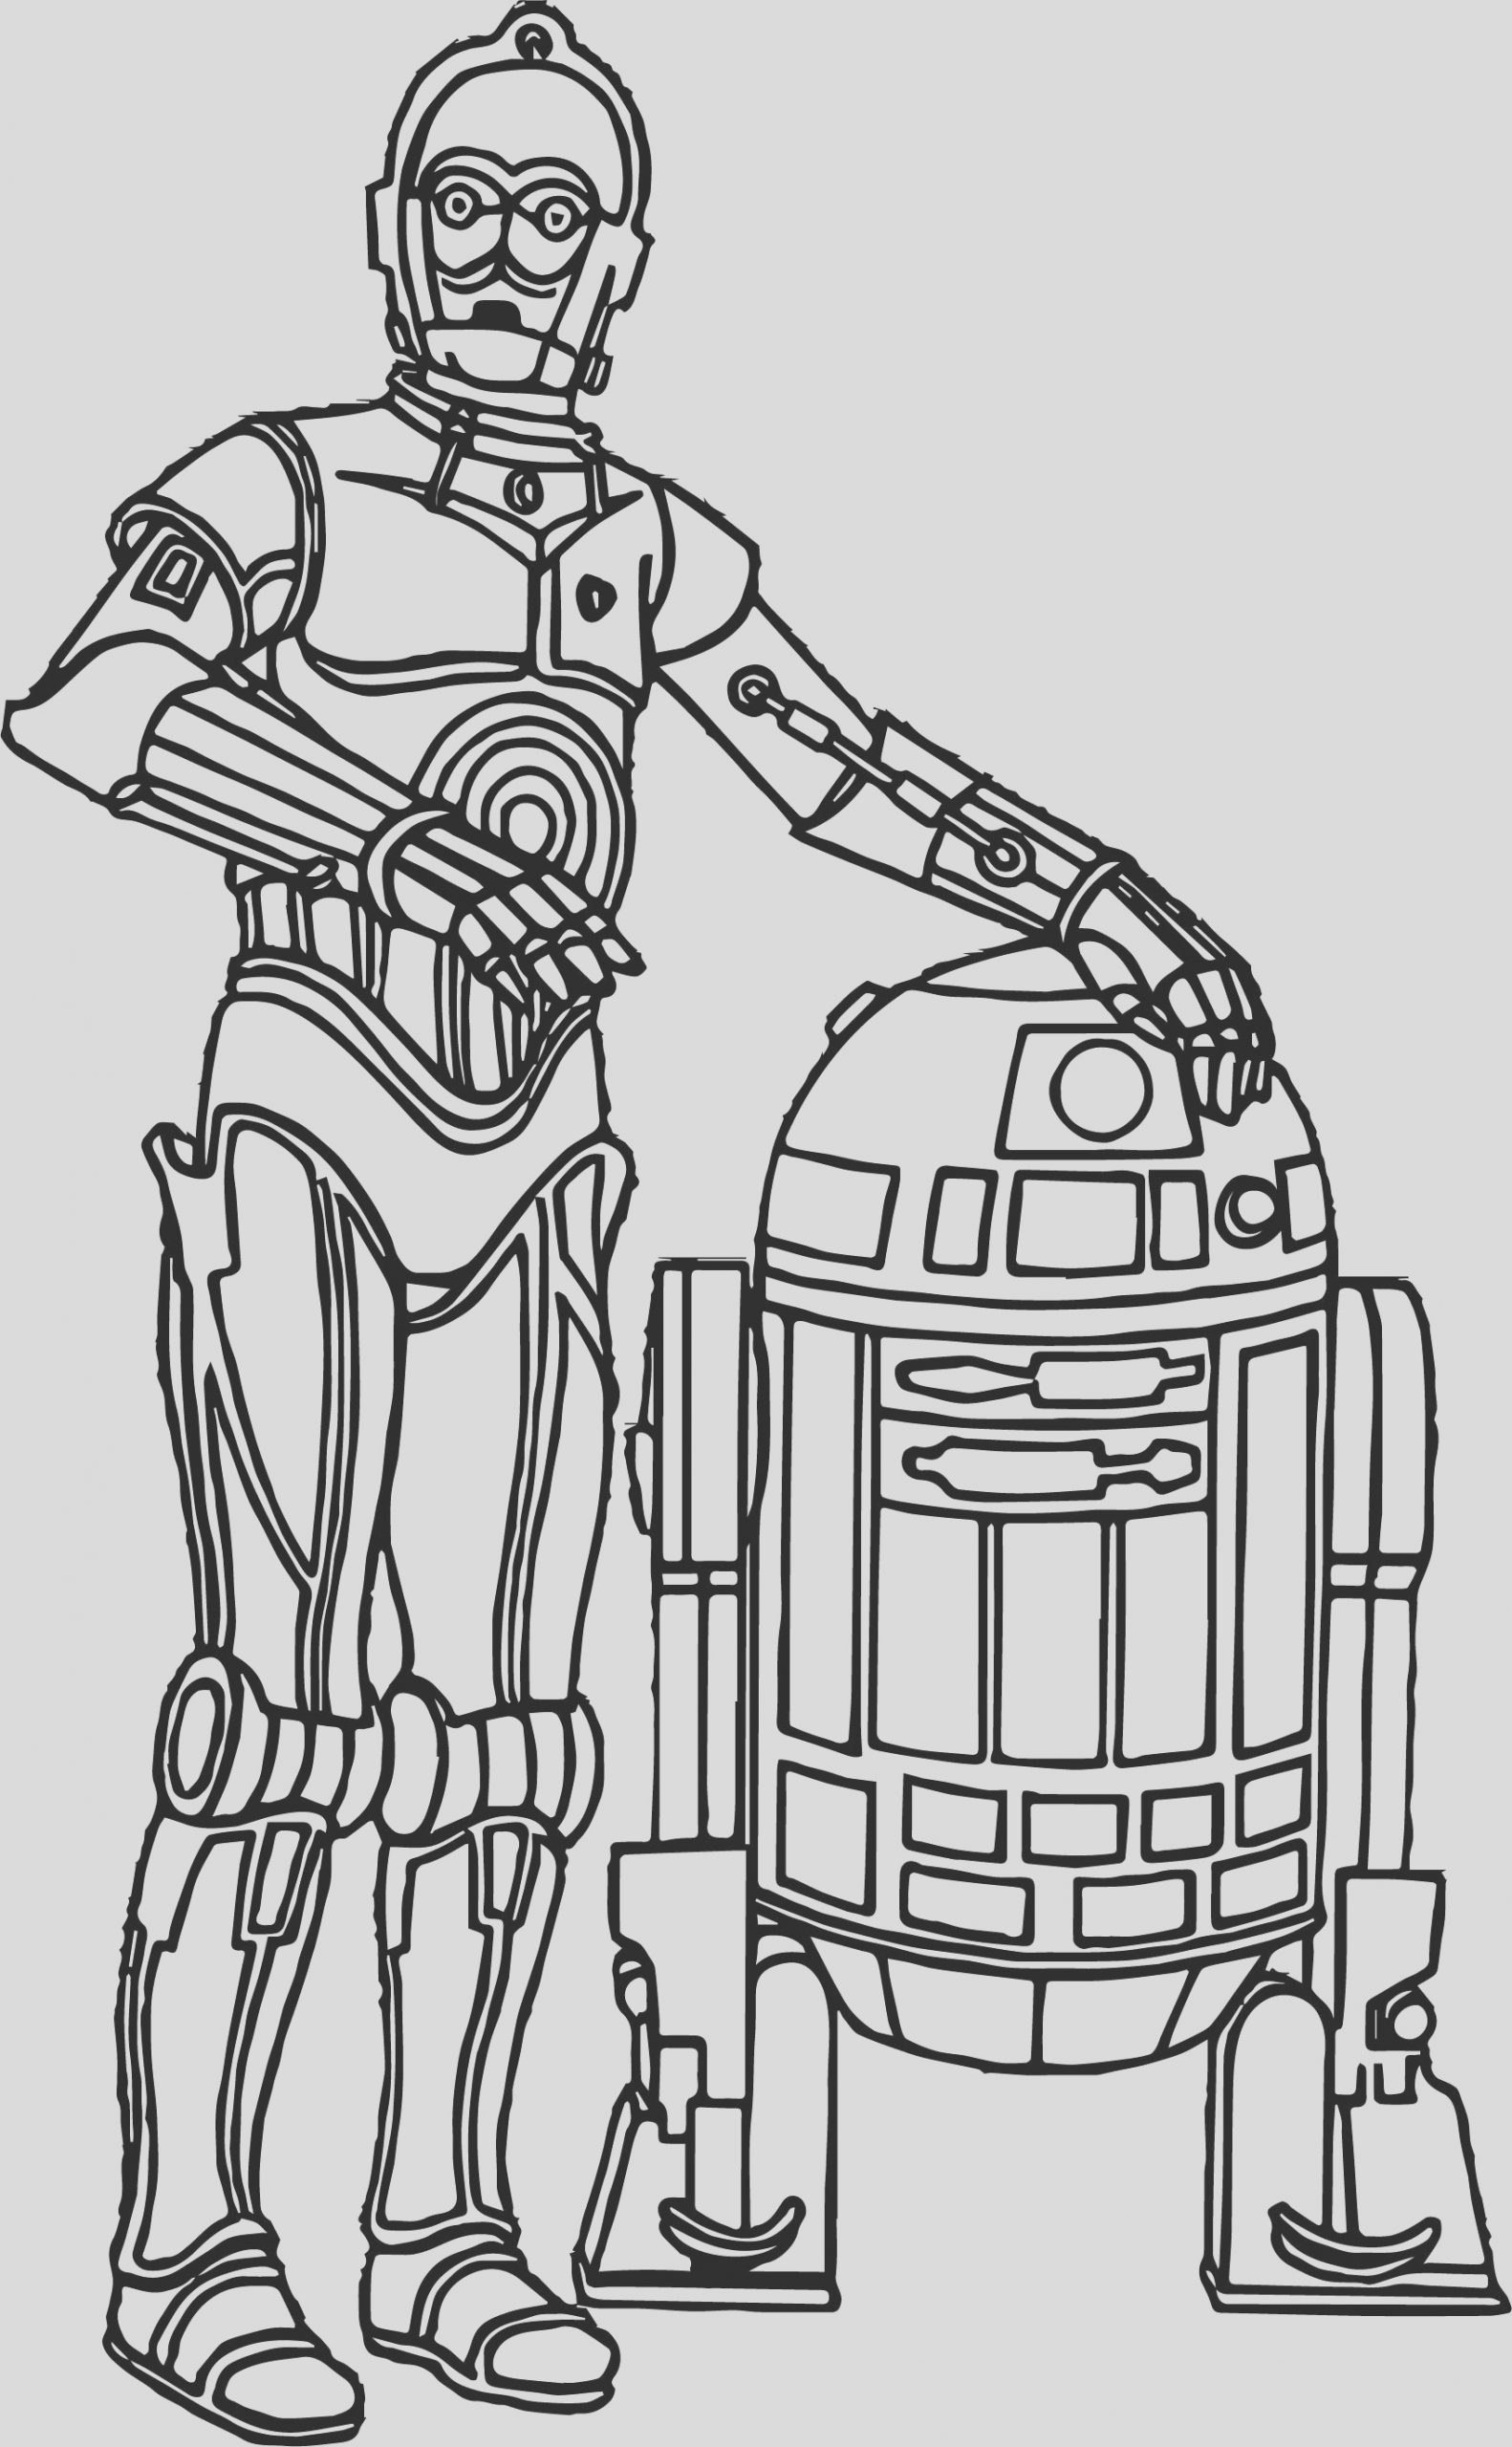 star wars force awakens robot character coloring pages